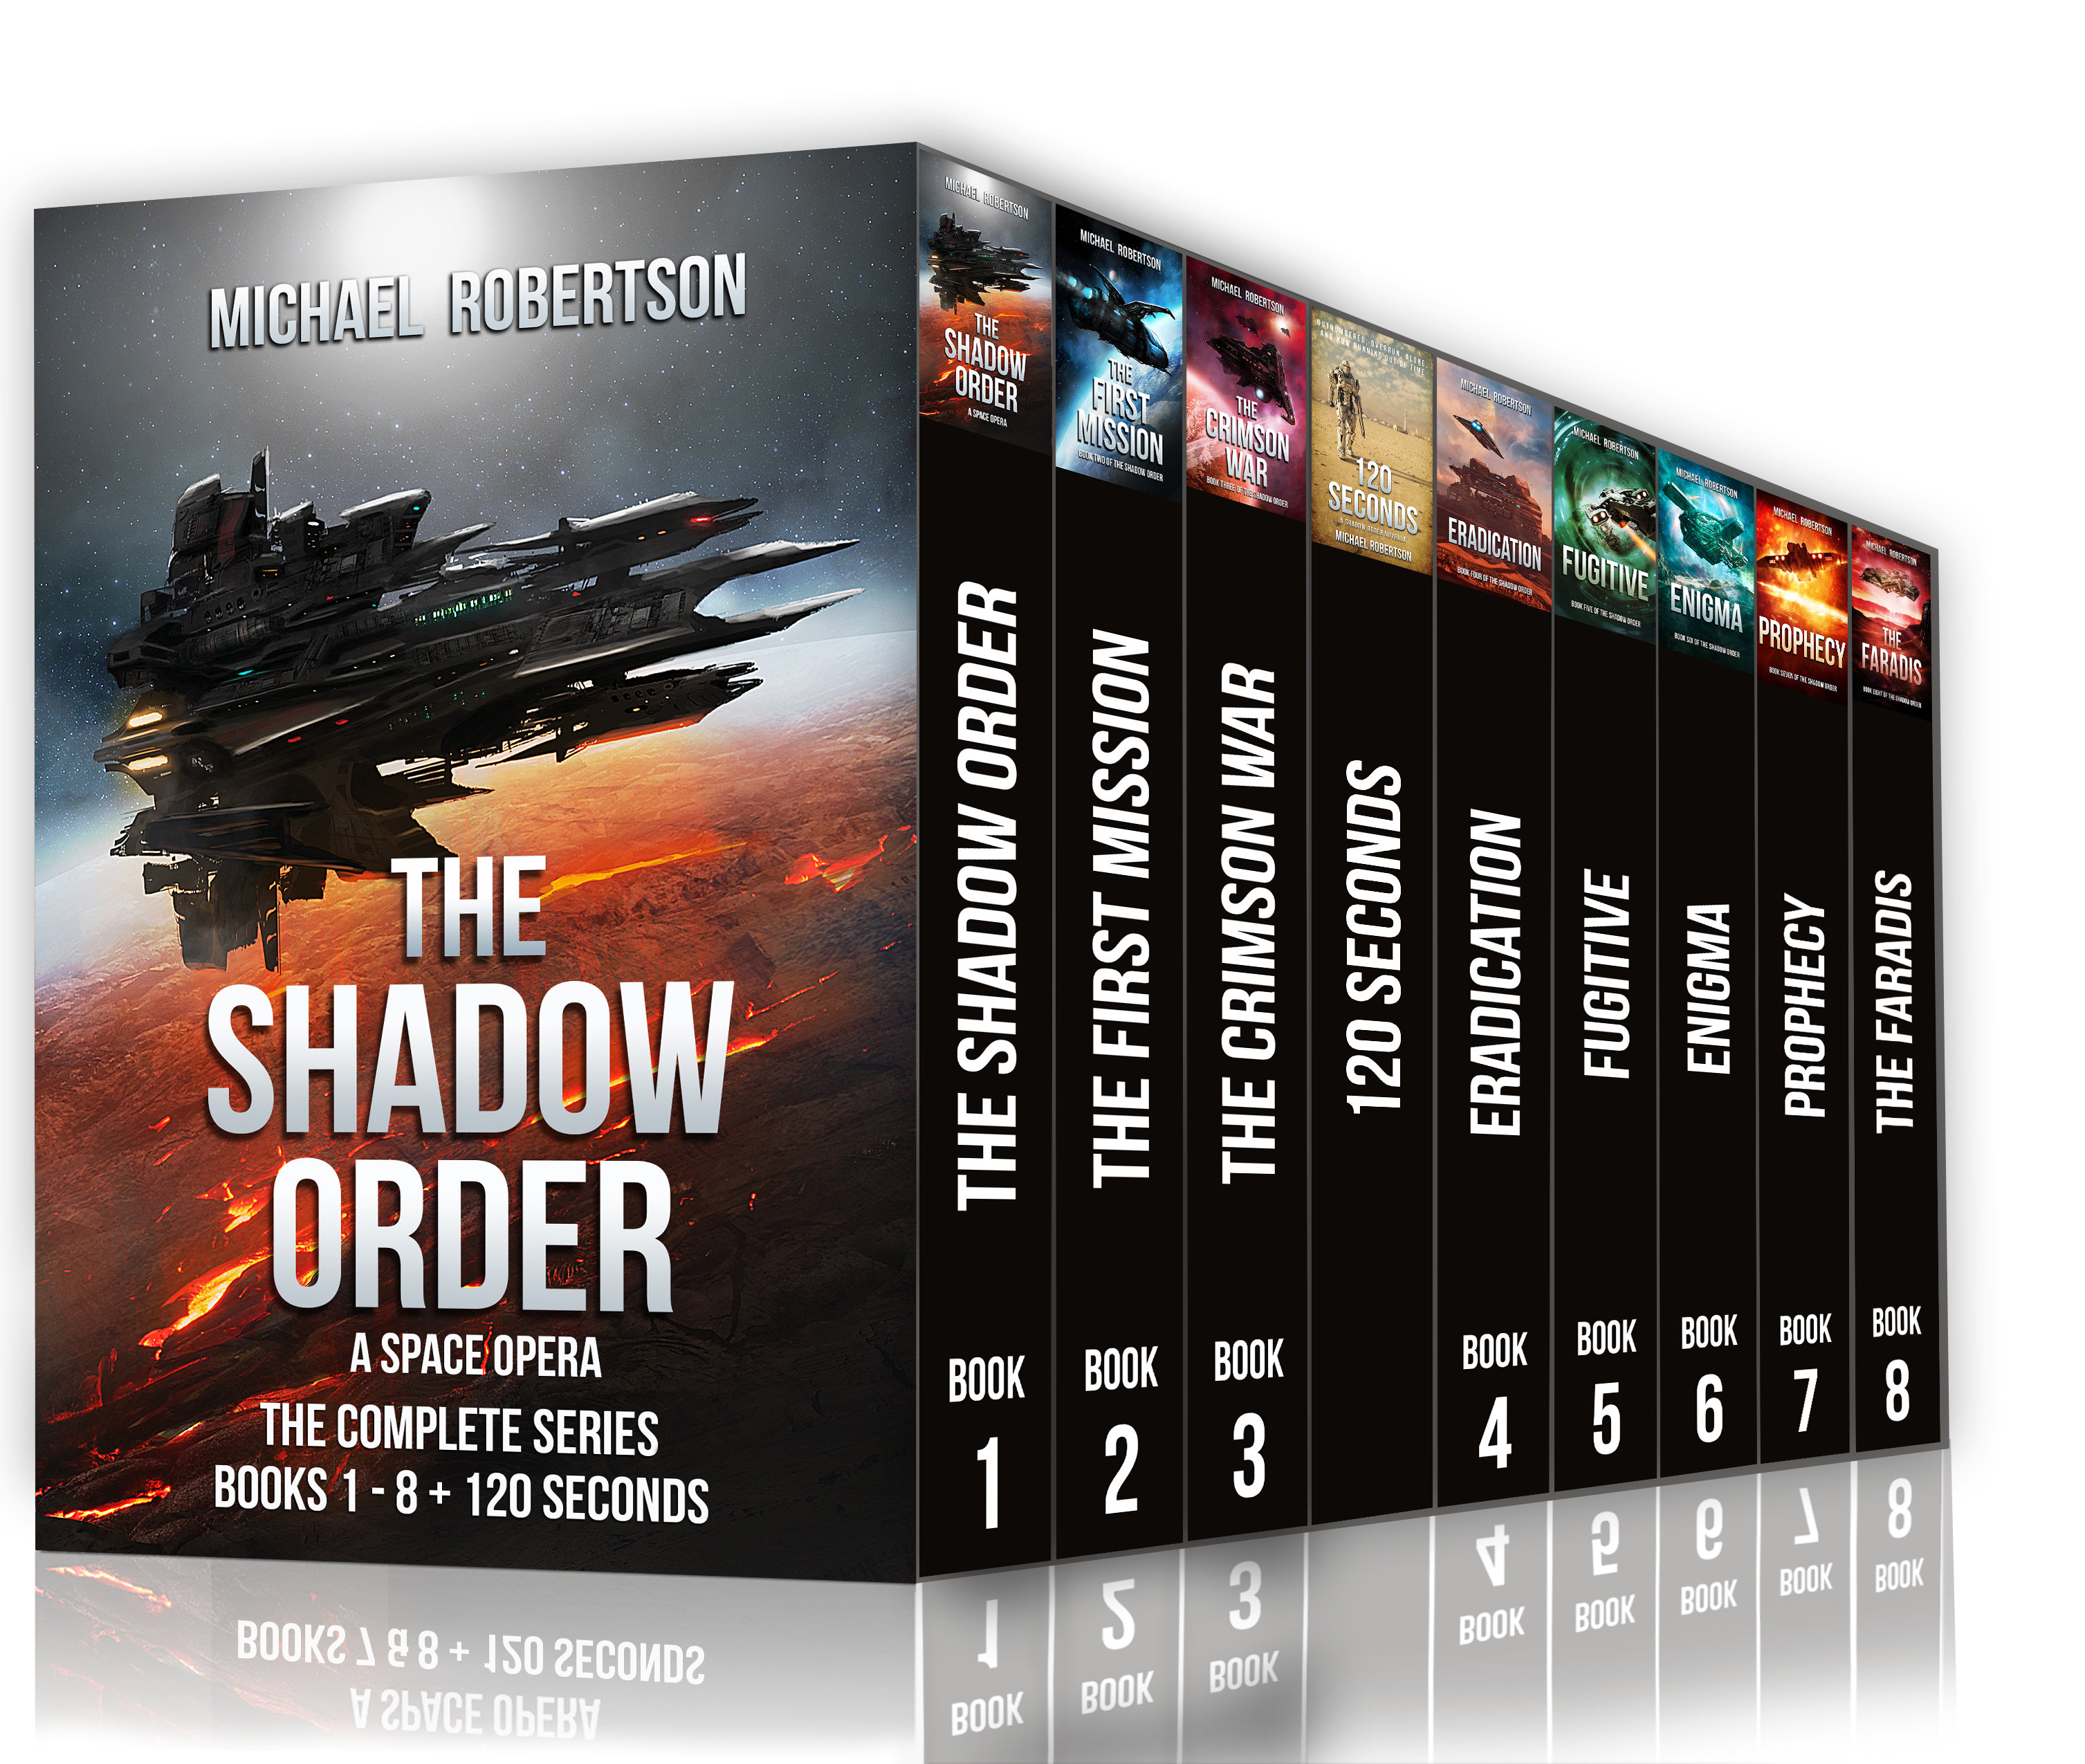 The Shadow Order - Books 1 - 8 + 120 Seconds (The complete series)